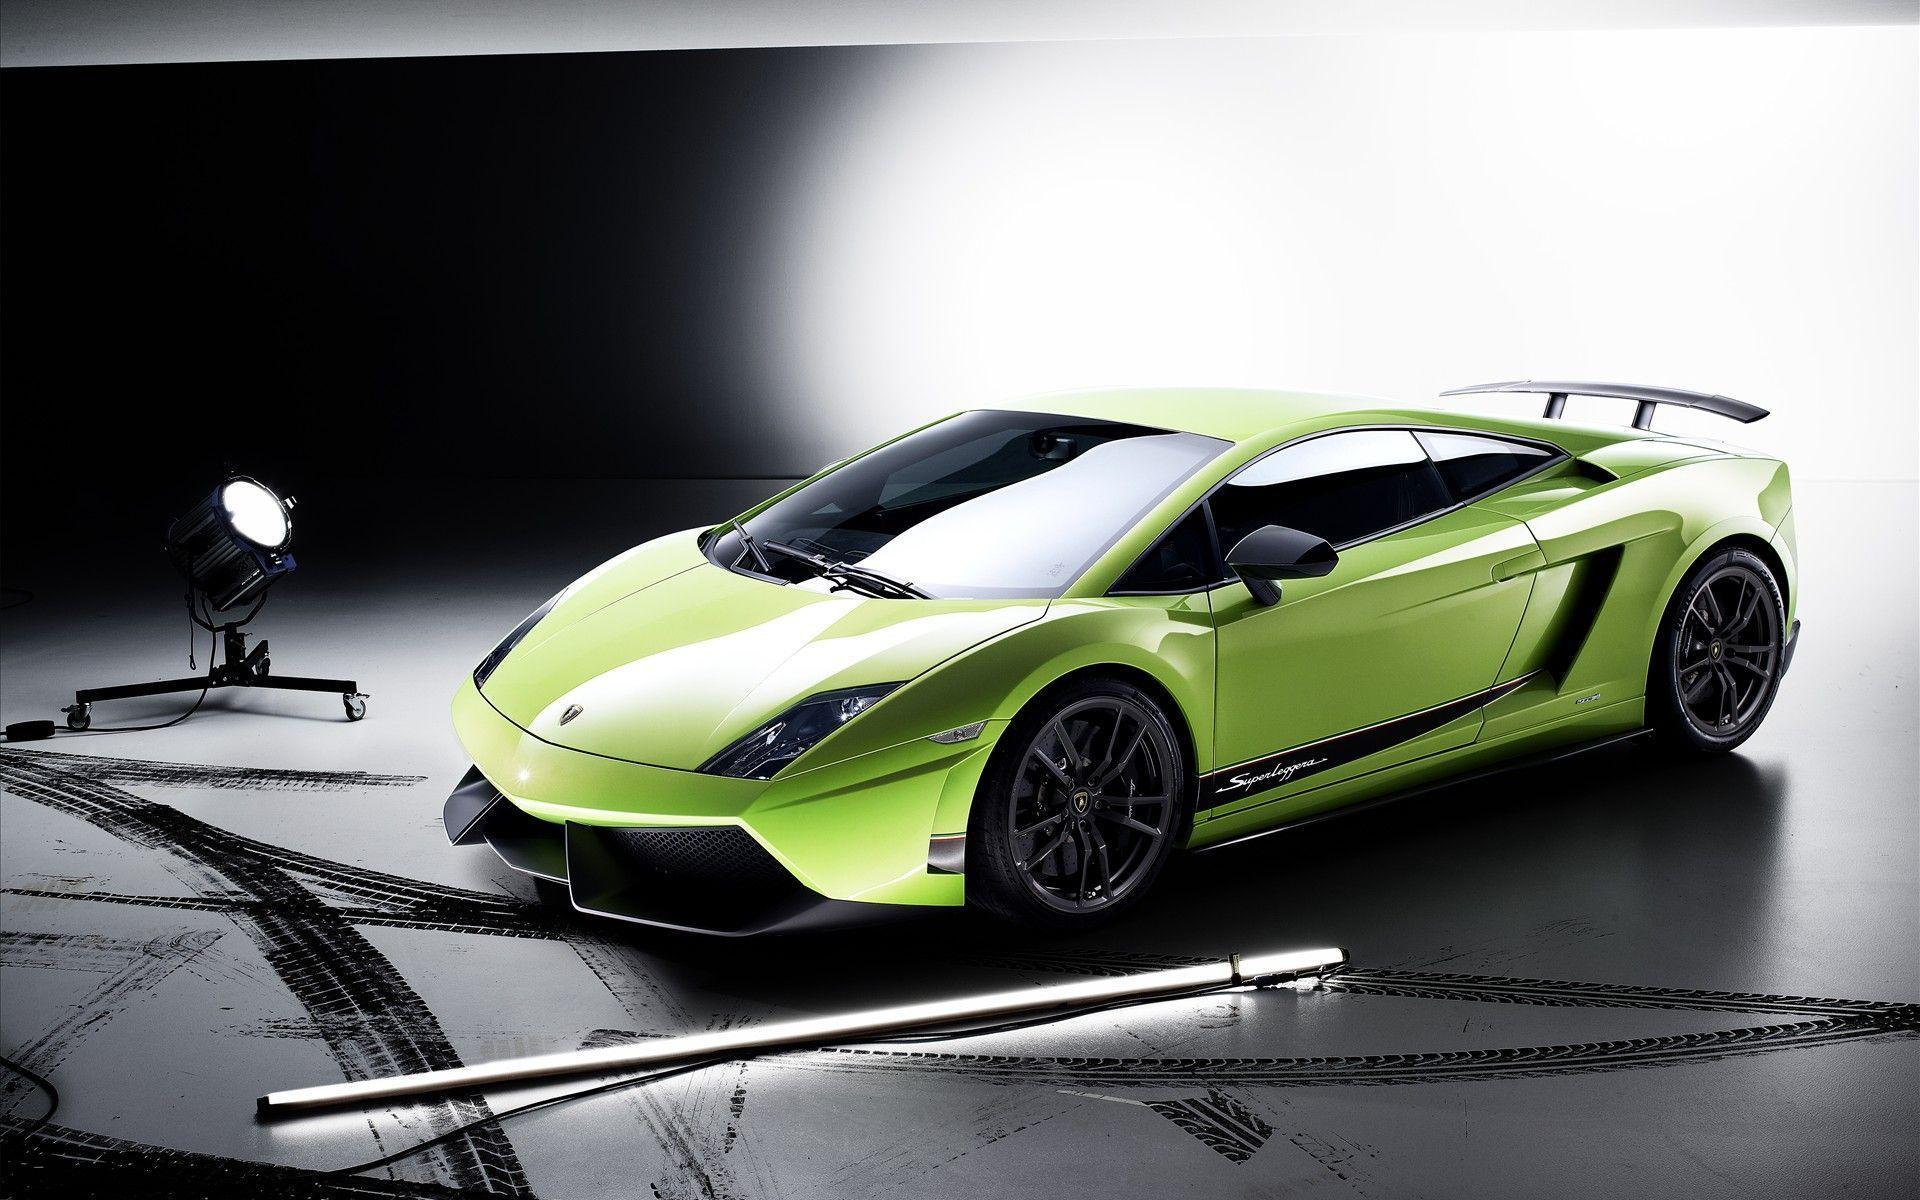 2011 lamborghini gallardo lp 570 4 superleggera wallpapers hd